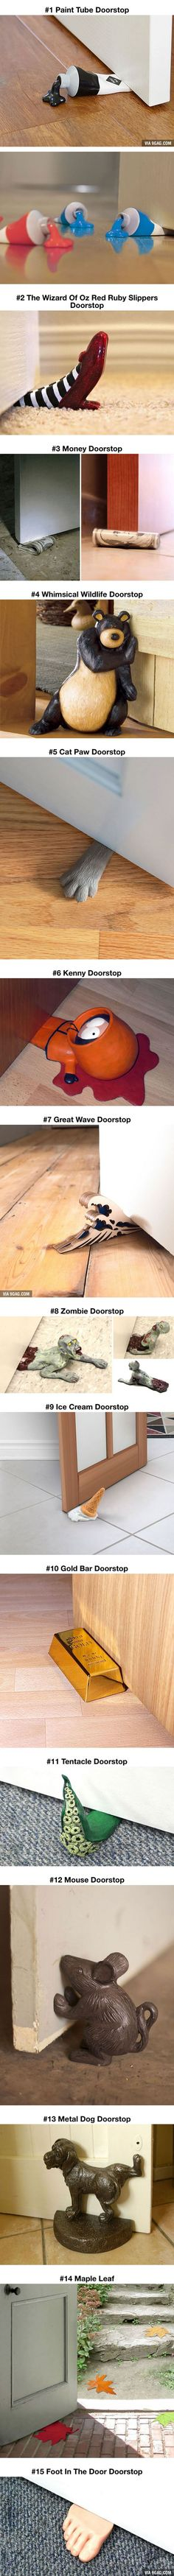 15 Fun Doorstops. You've Never Wanted A Doorstop This Much! - 9GAG